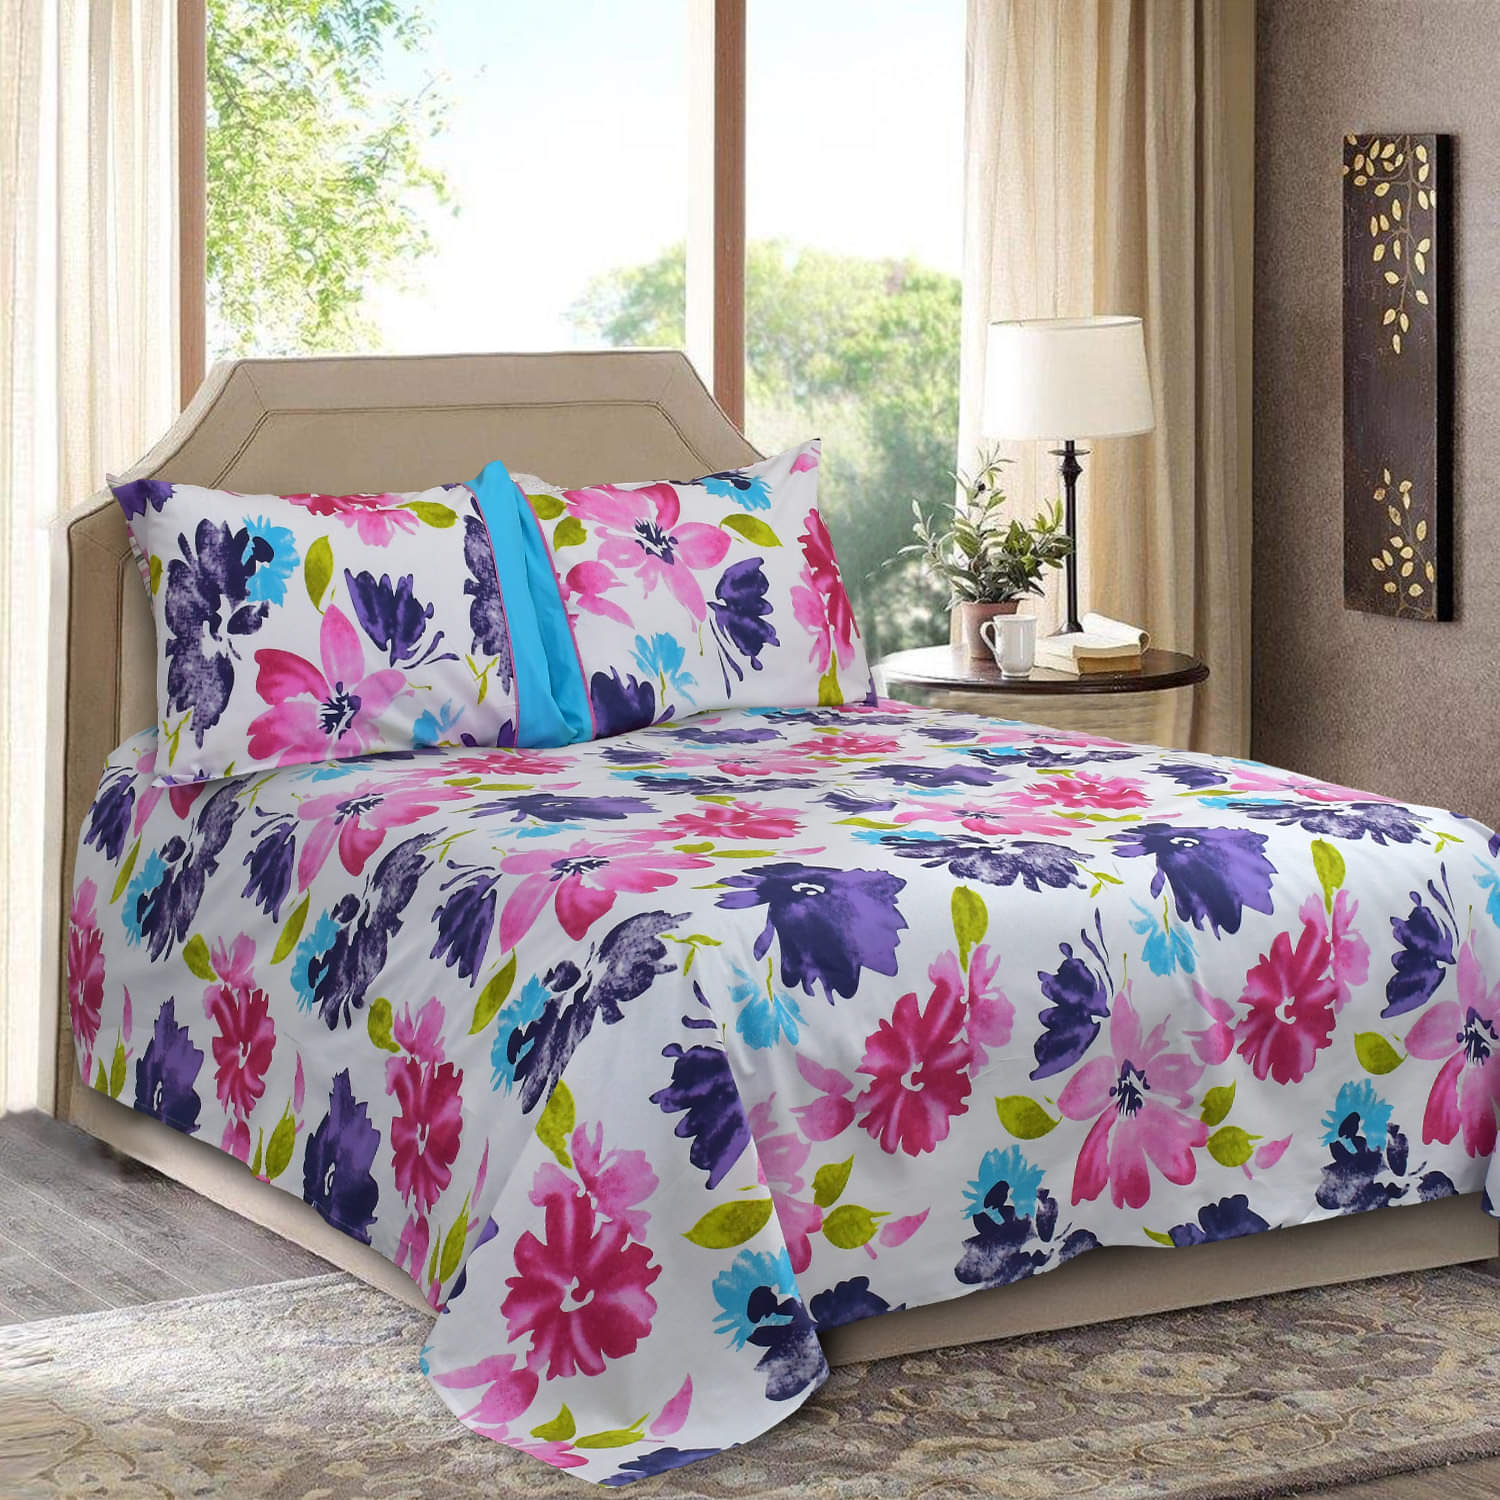 Premium Poly Cotton King Size Bedsheet Set 3 Pcs-MultiFloral Design (Thread Count 180)